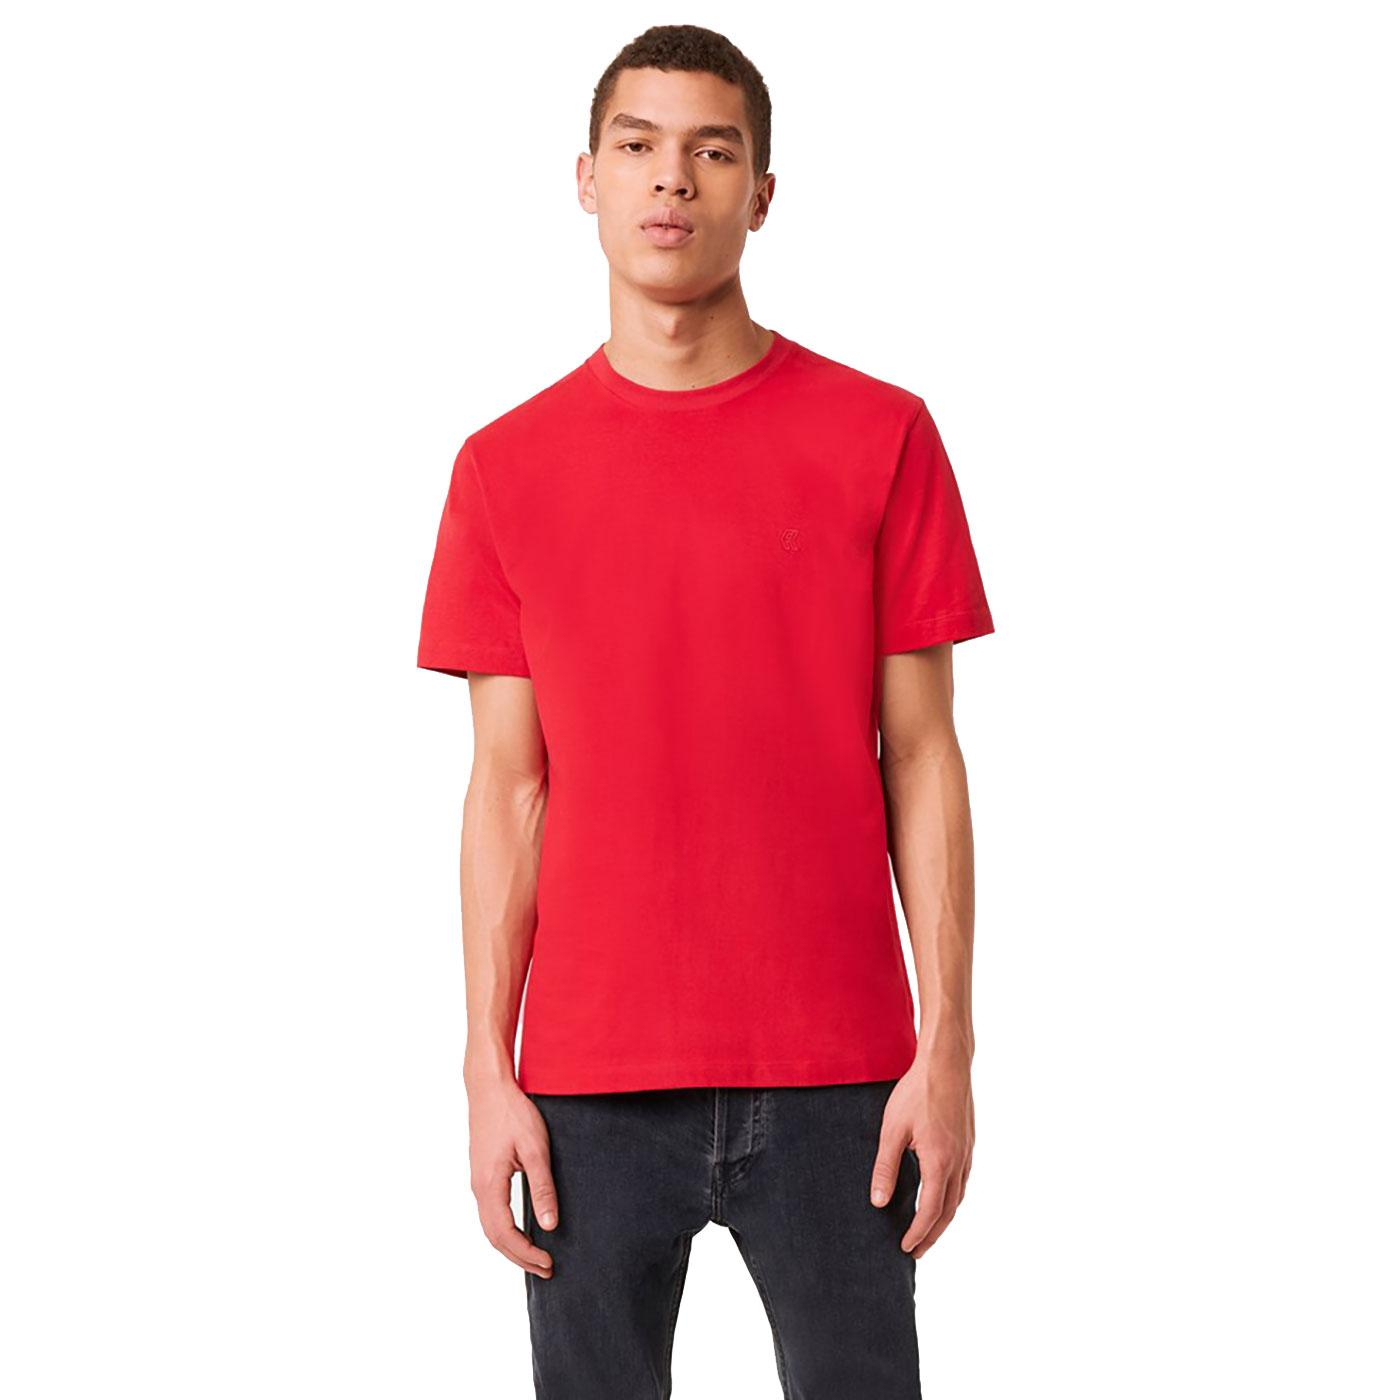 FRENCH CONNECTION Organic Cotton Crew Neck Tee R